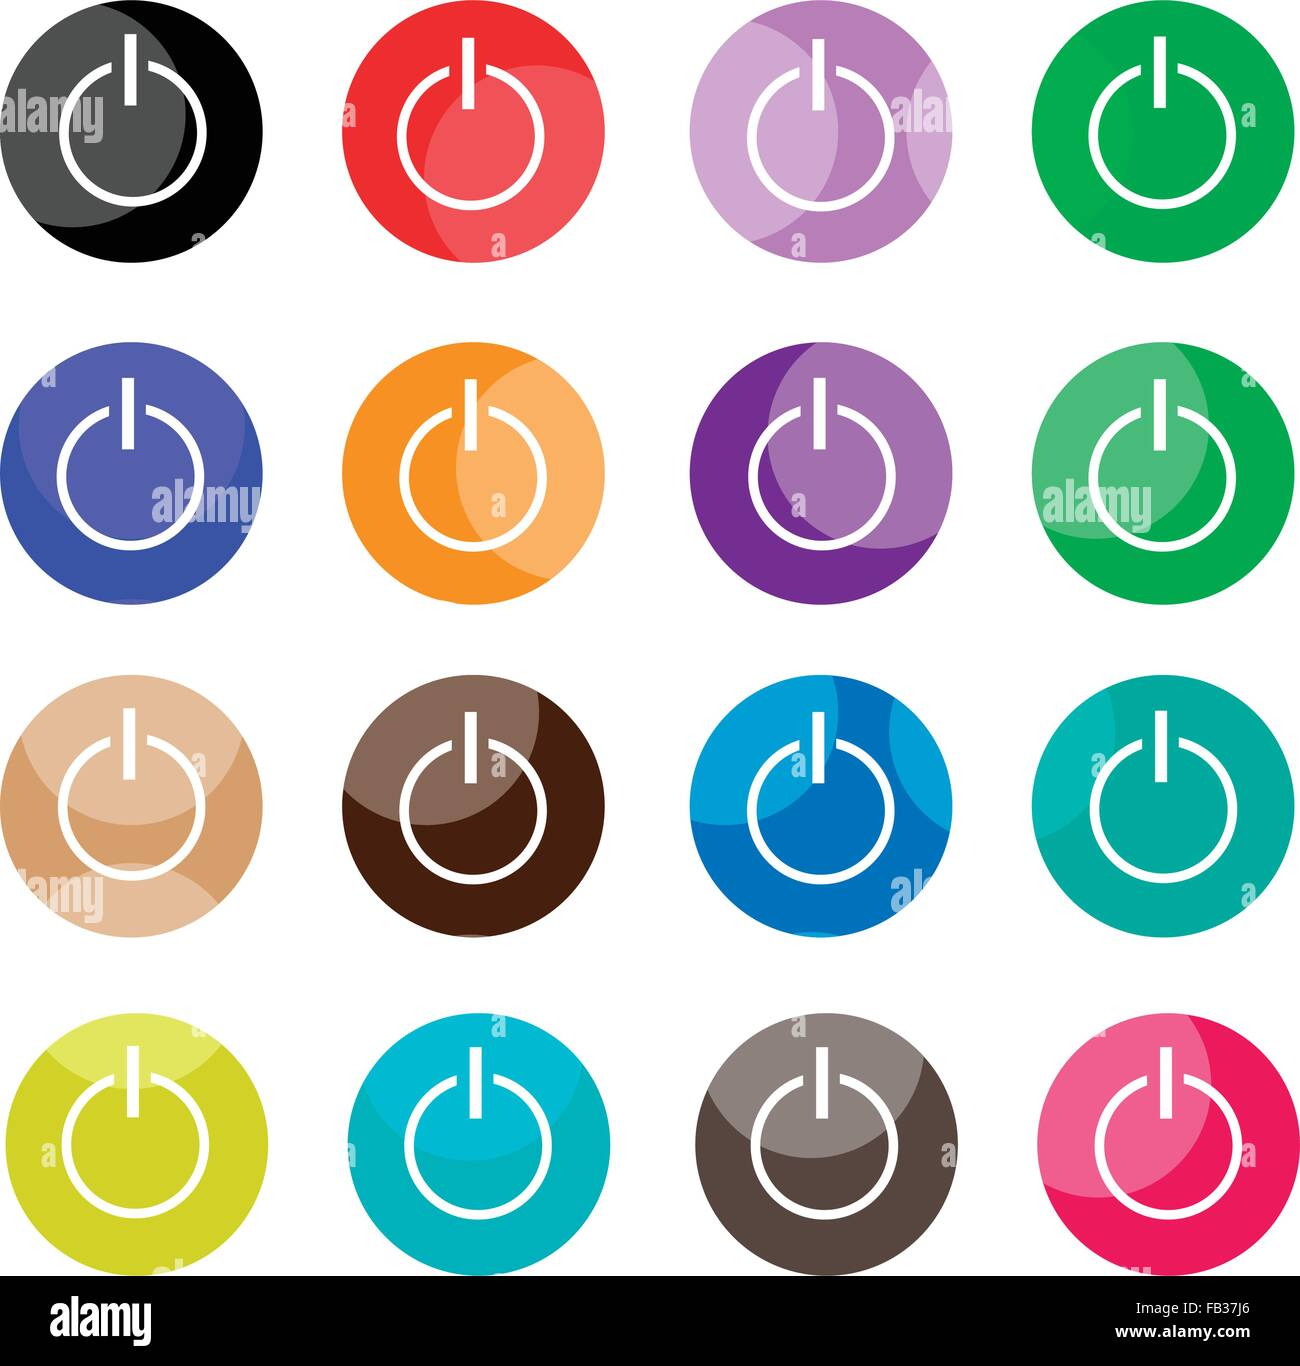 Flat icons illustration set of 16 shut down icons or power off flat icons illustration set of 16 shut down icons or power off button icons with computer and technology concepts biocorpaavc Choice Image